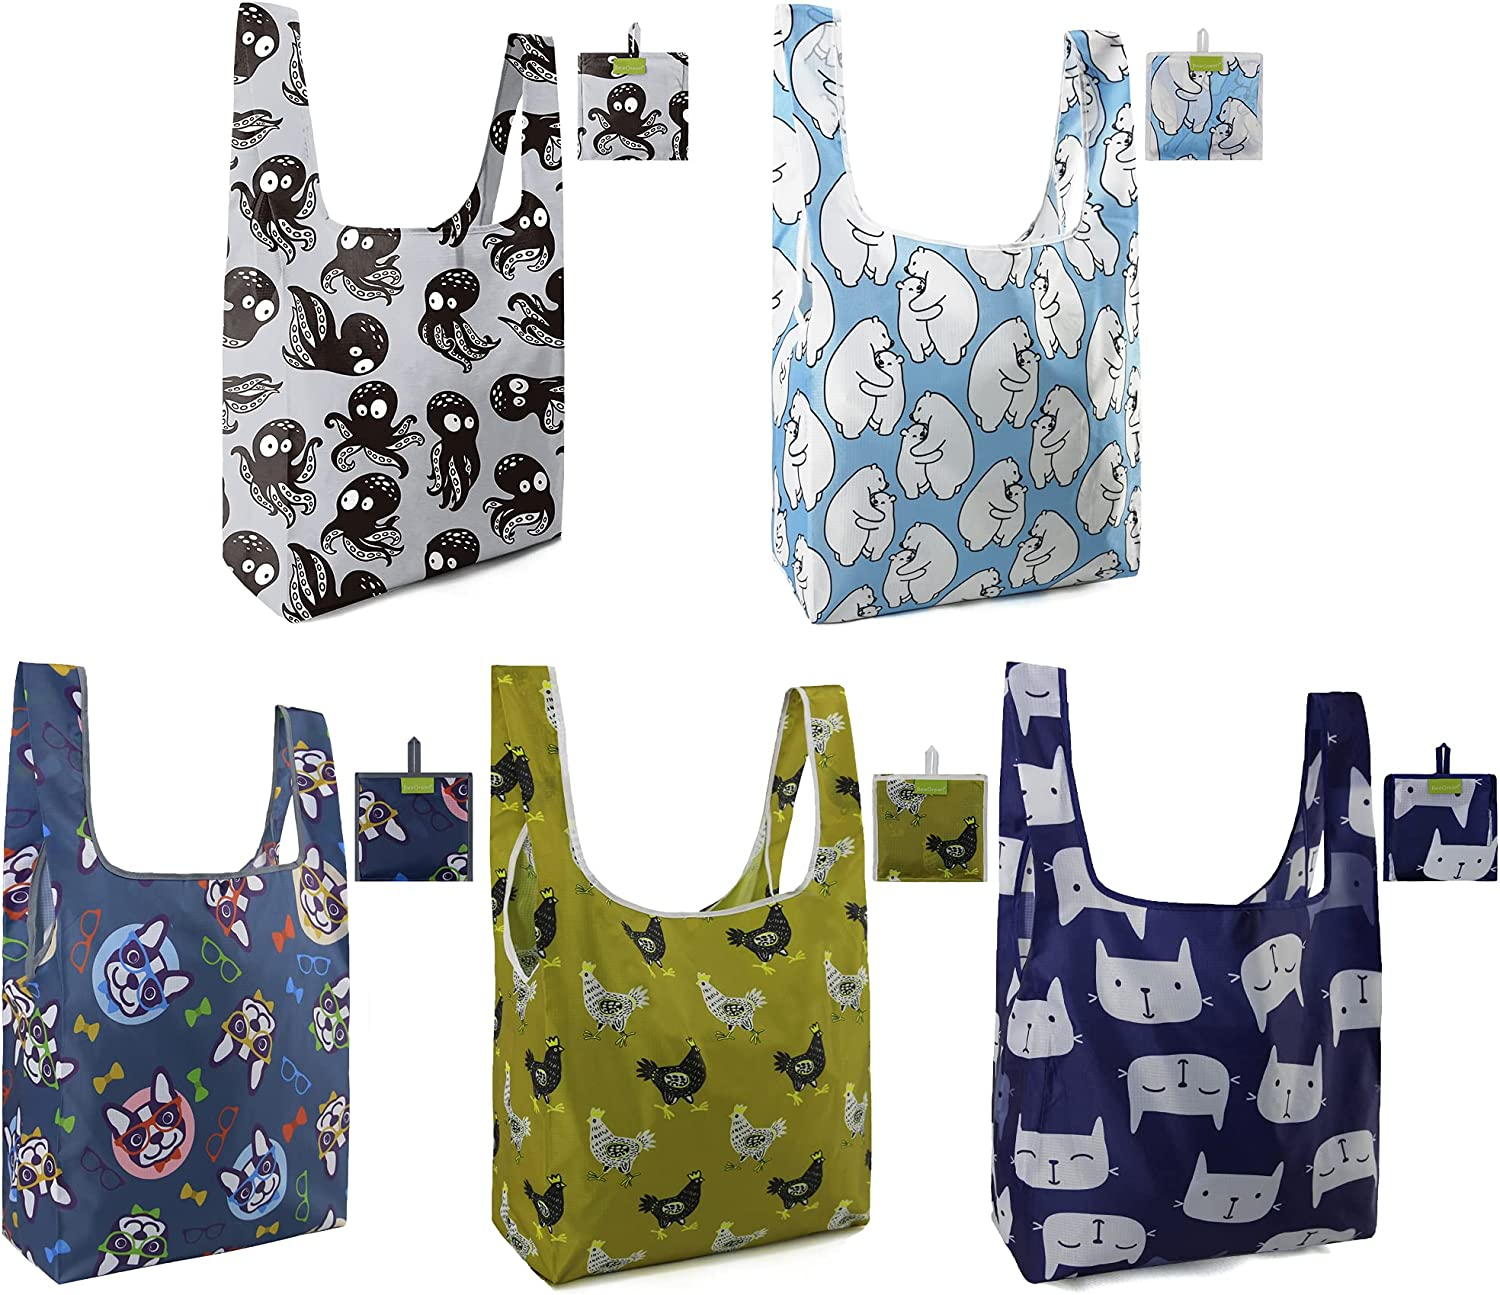 BeeGreen Set of 5 Animal Grocery Bags Reusable Shopping Bags Cute Groceries Bags with Handles Foldable Washable Waterproof Eco-friendly Octopus Bear Dog Chicken Cat